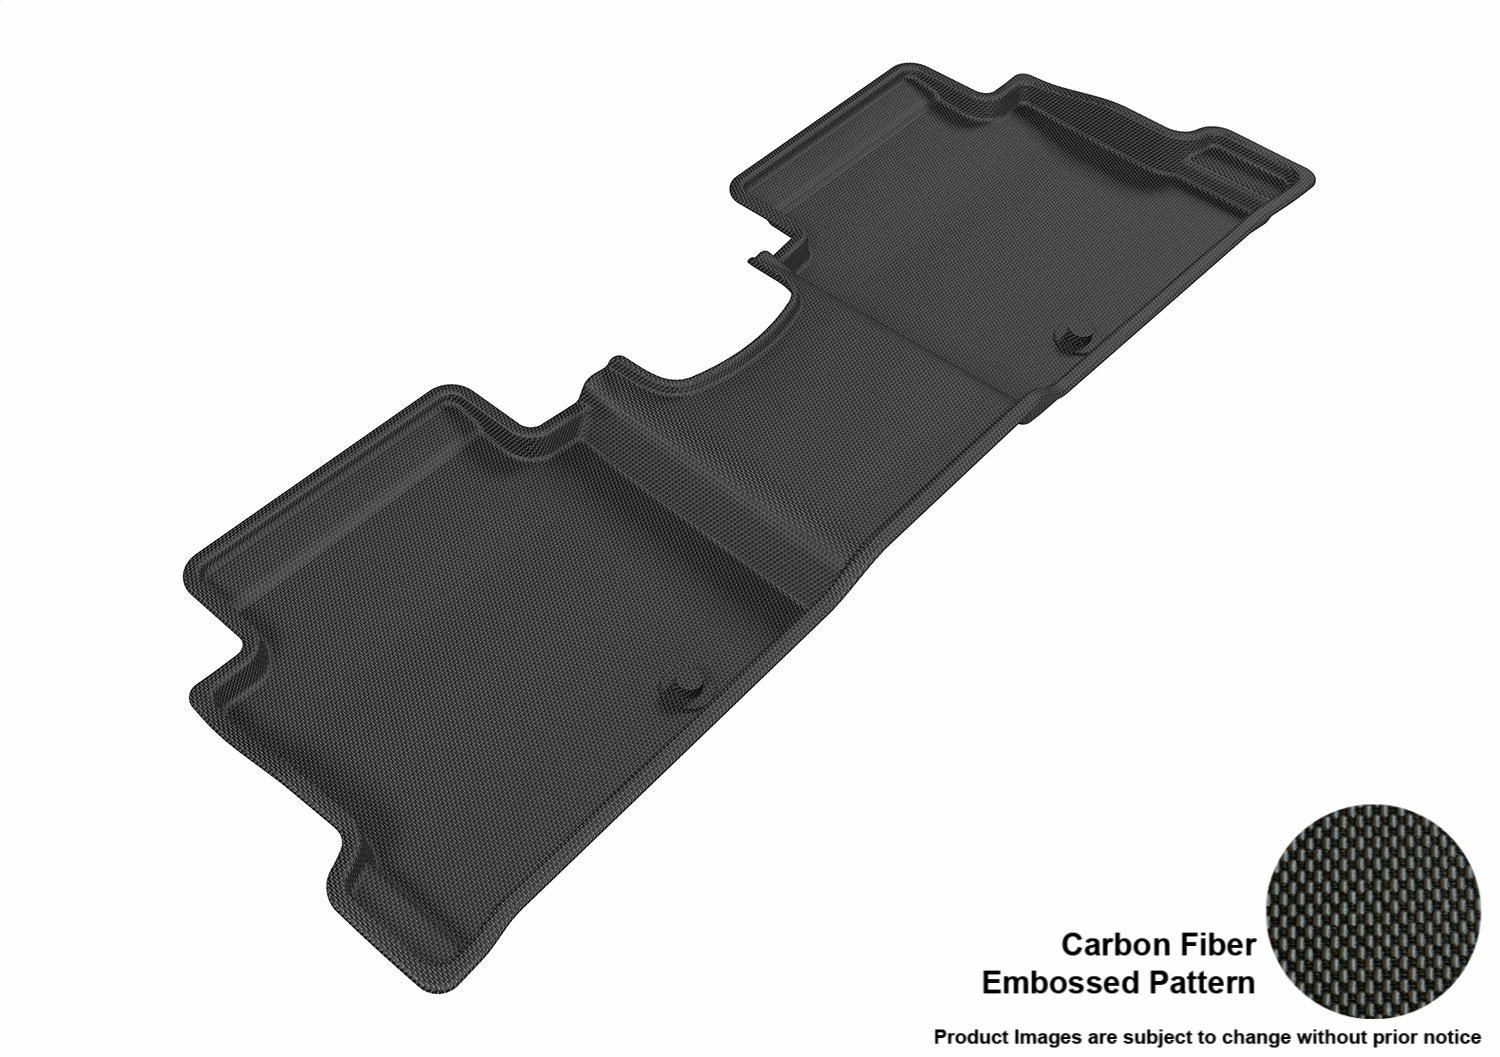 Gray 3D MAXpider L1HY07121501 Second Row Custom Fit All-Weather Floor Mat for Select Hyundai Elantra Models Kagu Rubber